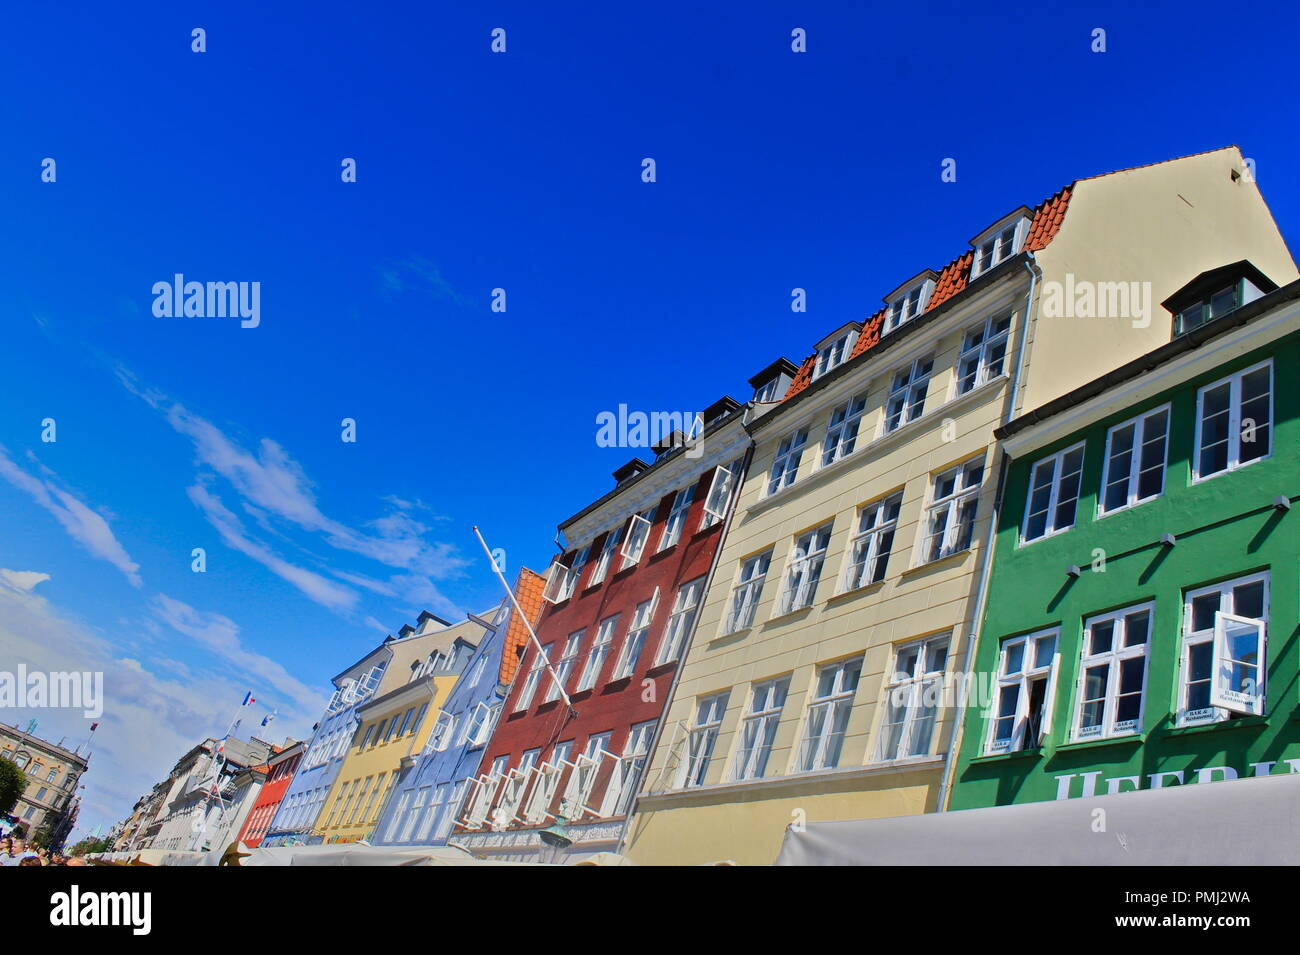 Colourful houses in Copenhagen - Stock Image